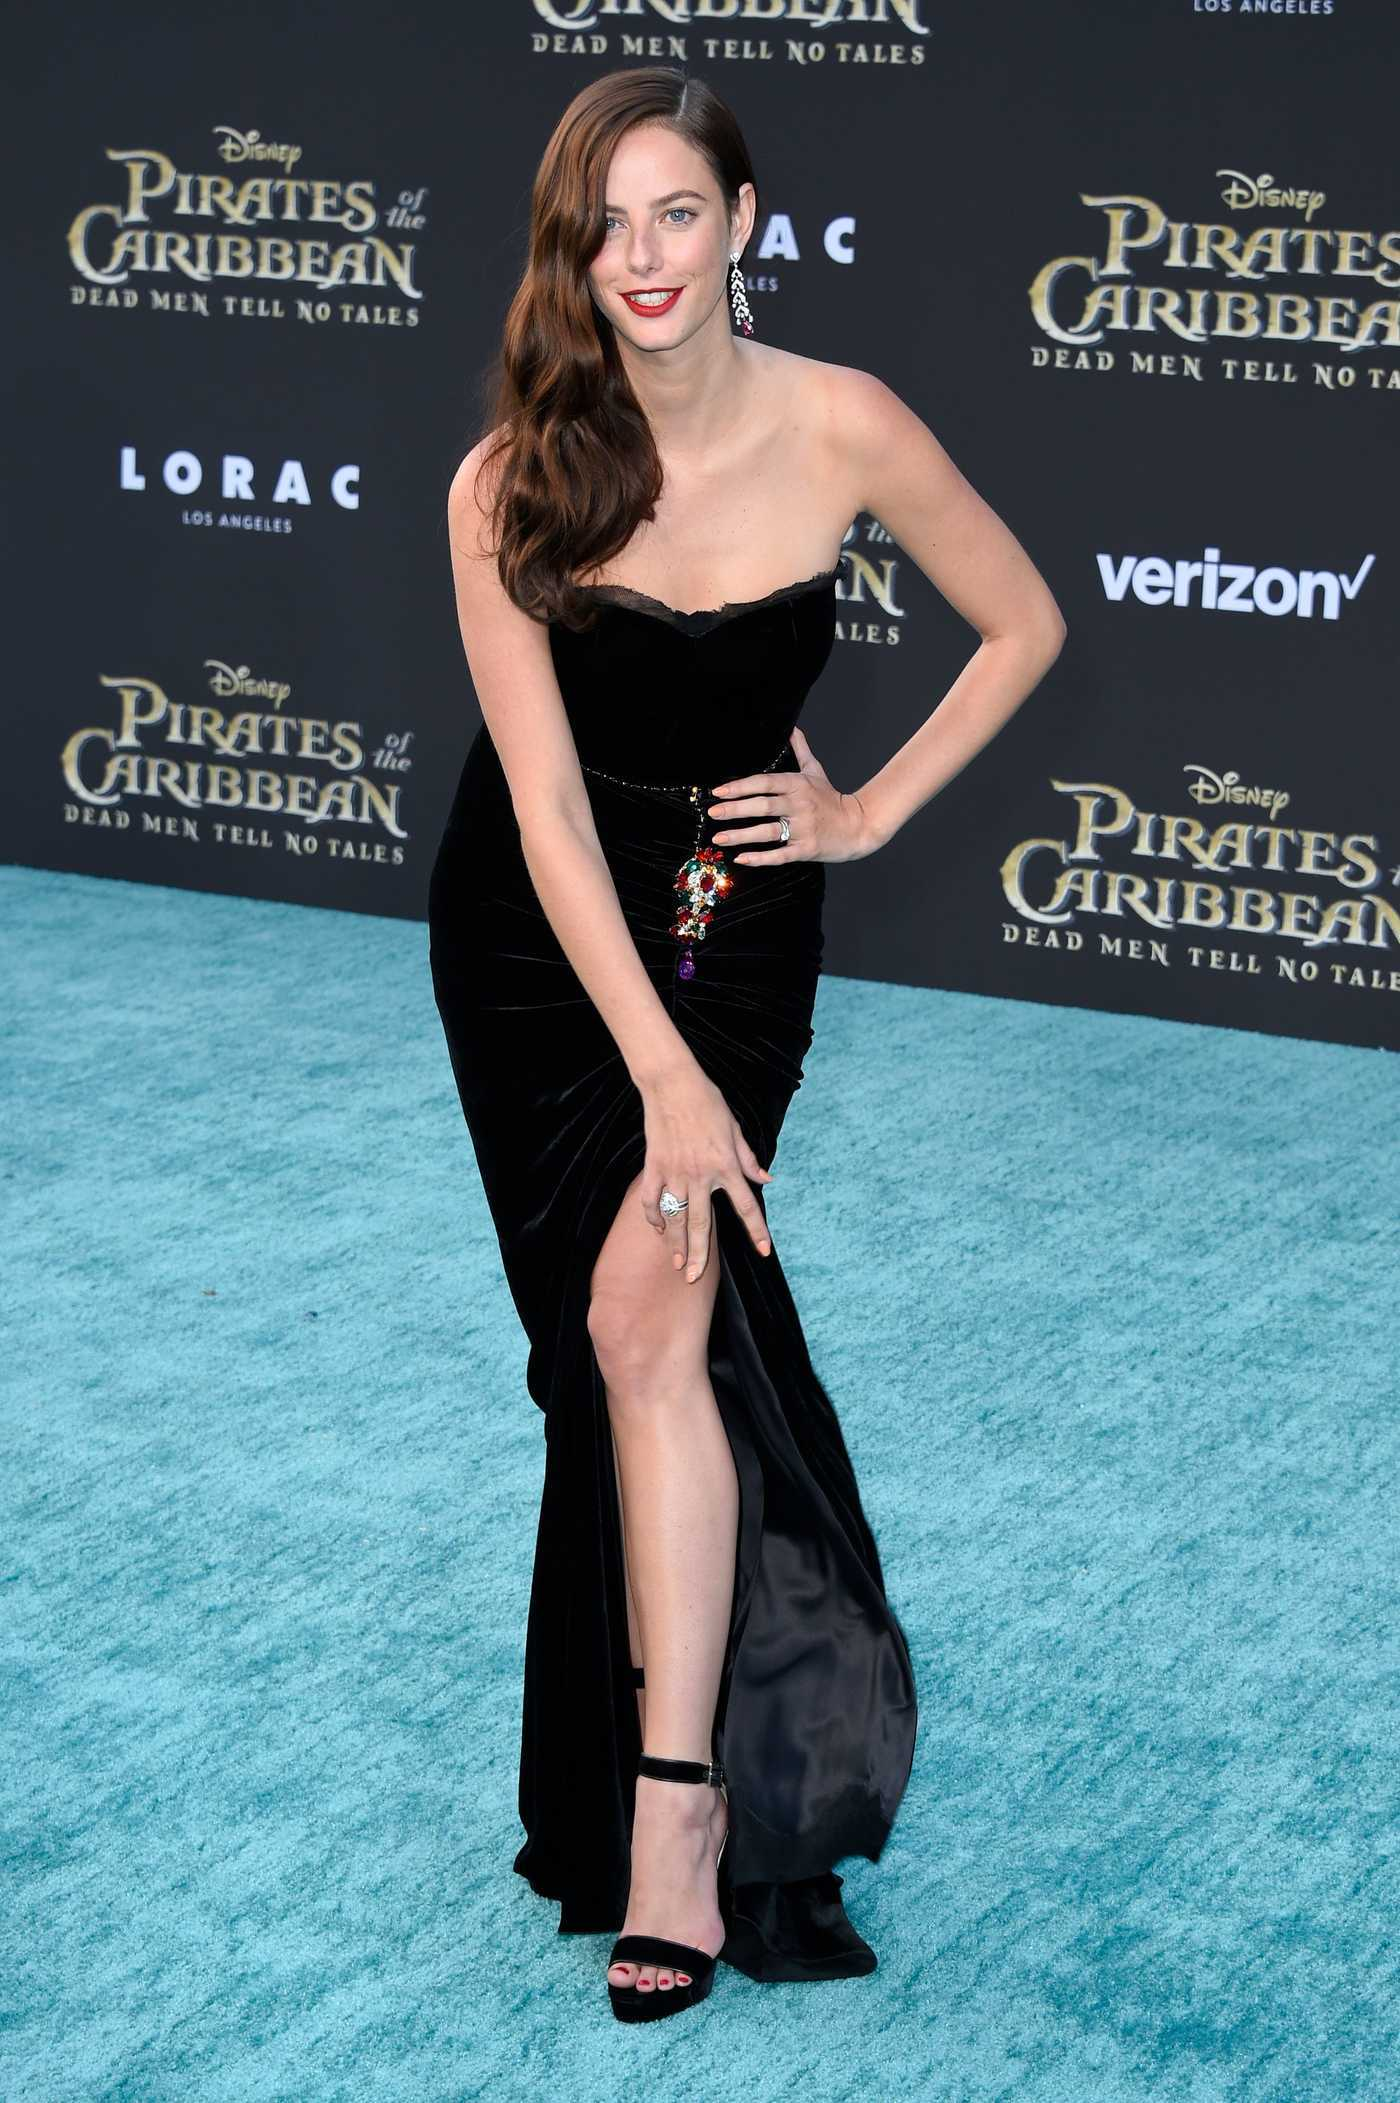 Kaya Scodelario at the Pirates of the Caribbean: Dead Men Tell no Tales Premiere in Hollywood 05/18/2017